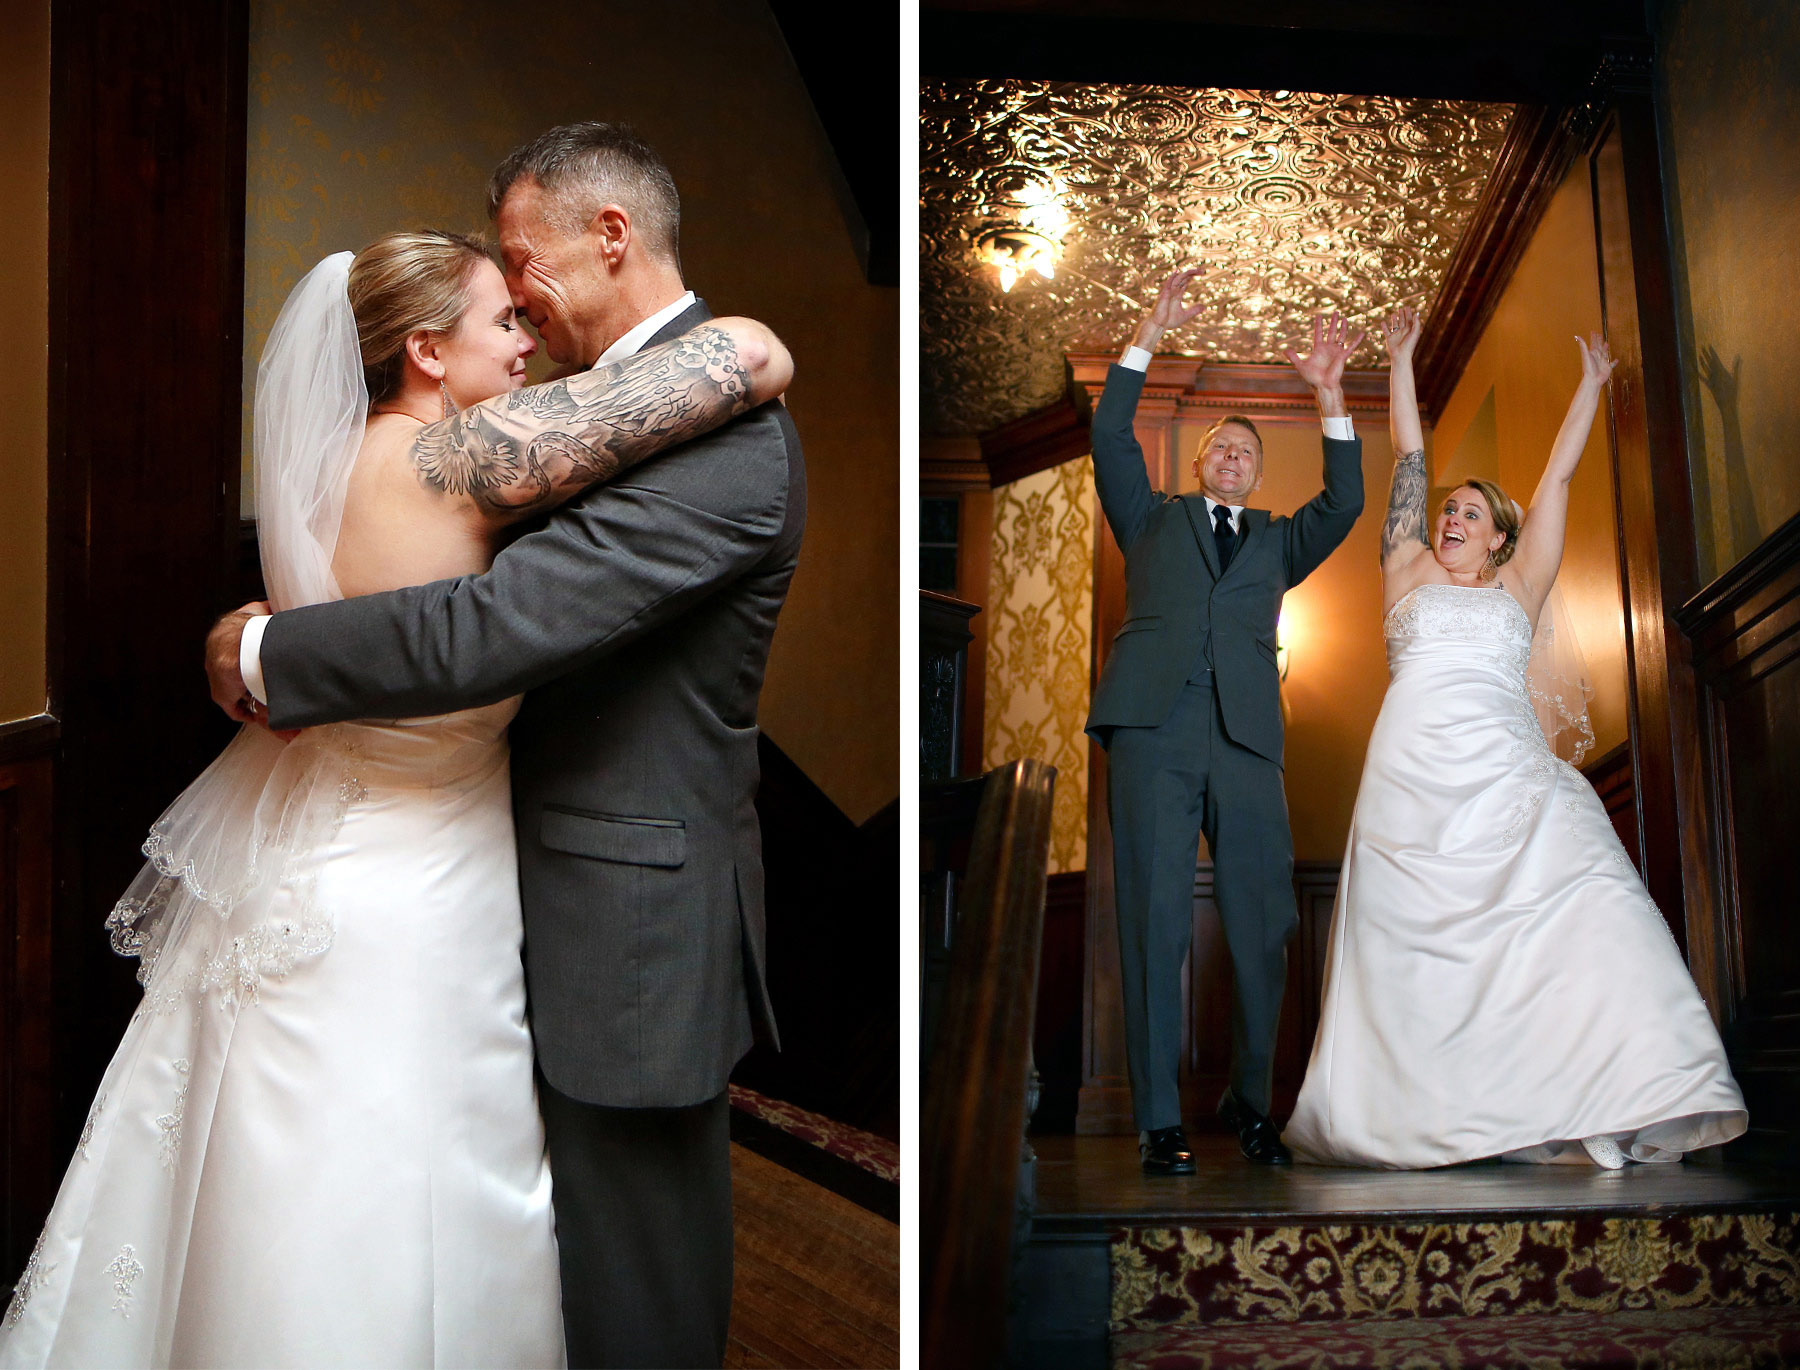 06-Minneapolis-Minnesota-Wedding-Photography-by-Vick-Photography-Semple-Mansion-Ariel-and-Jared.jpg